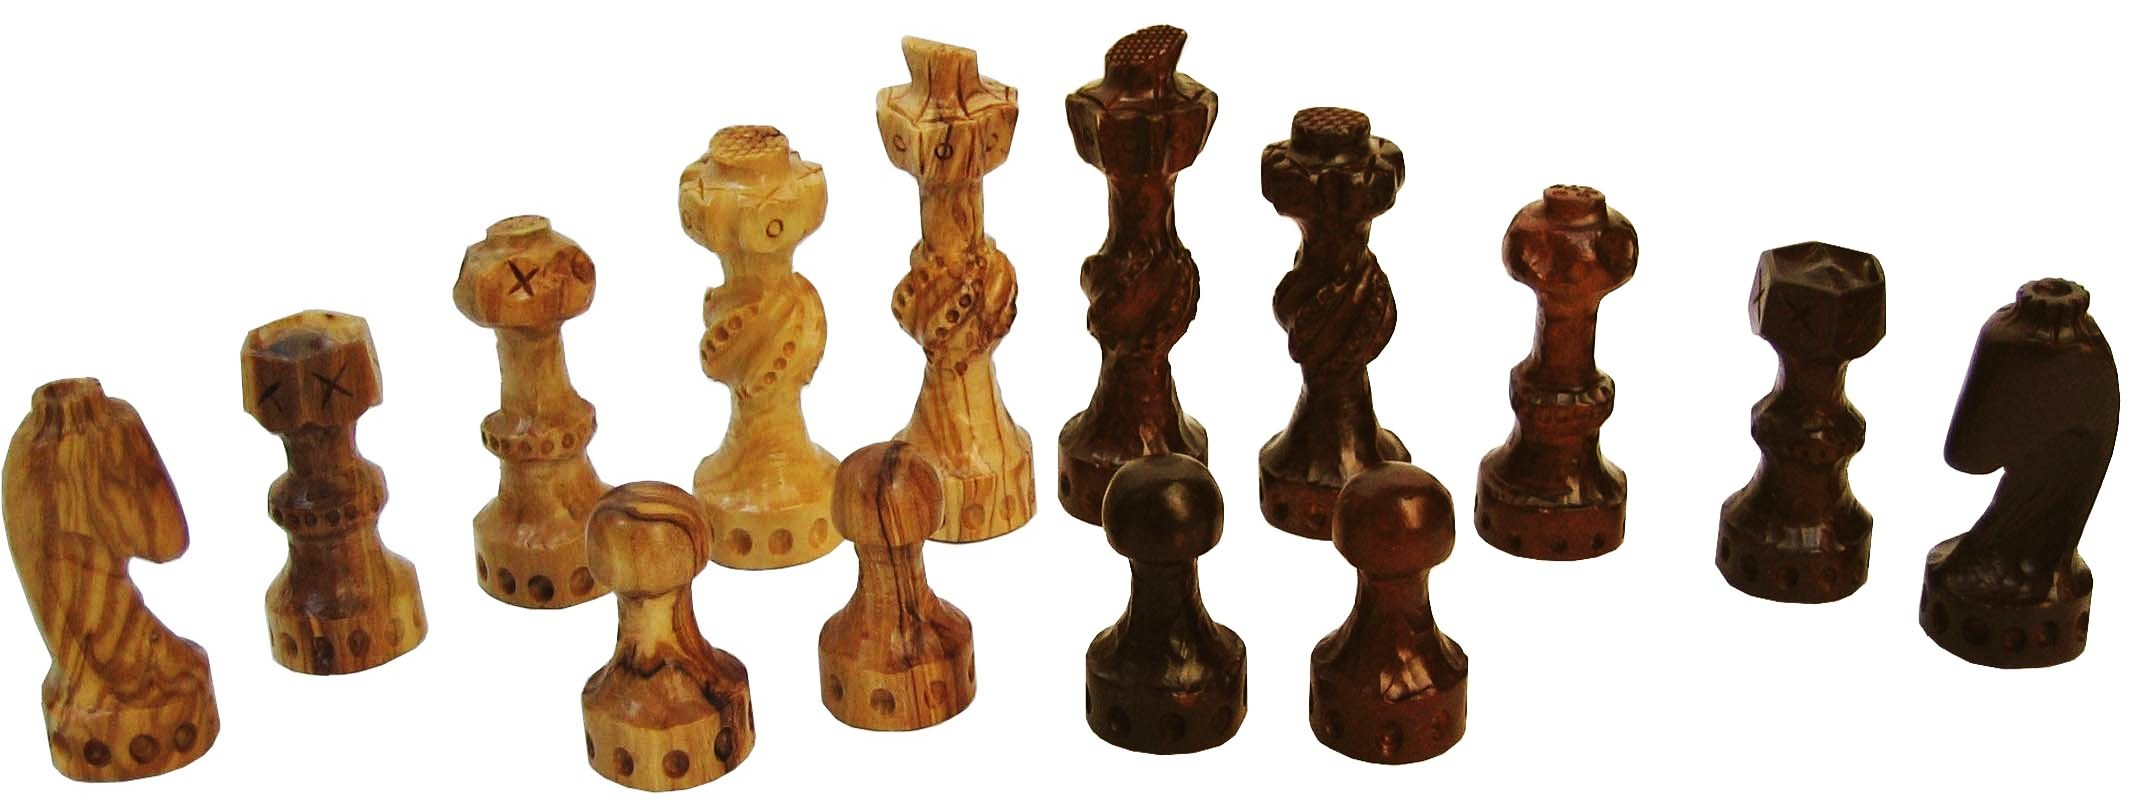 Chess set (Only the figures)